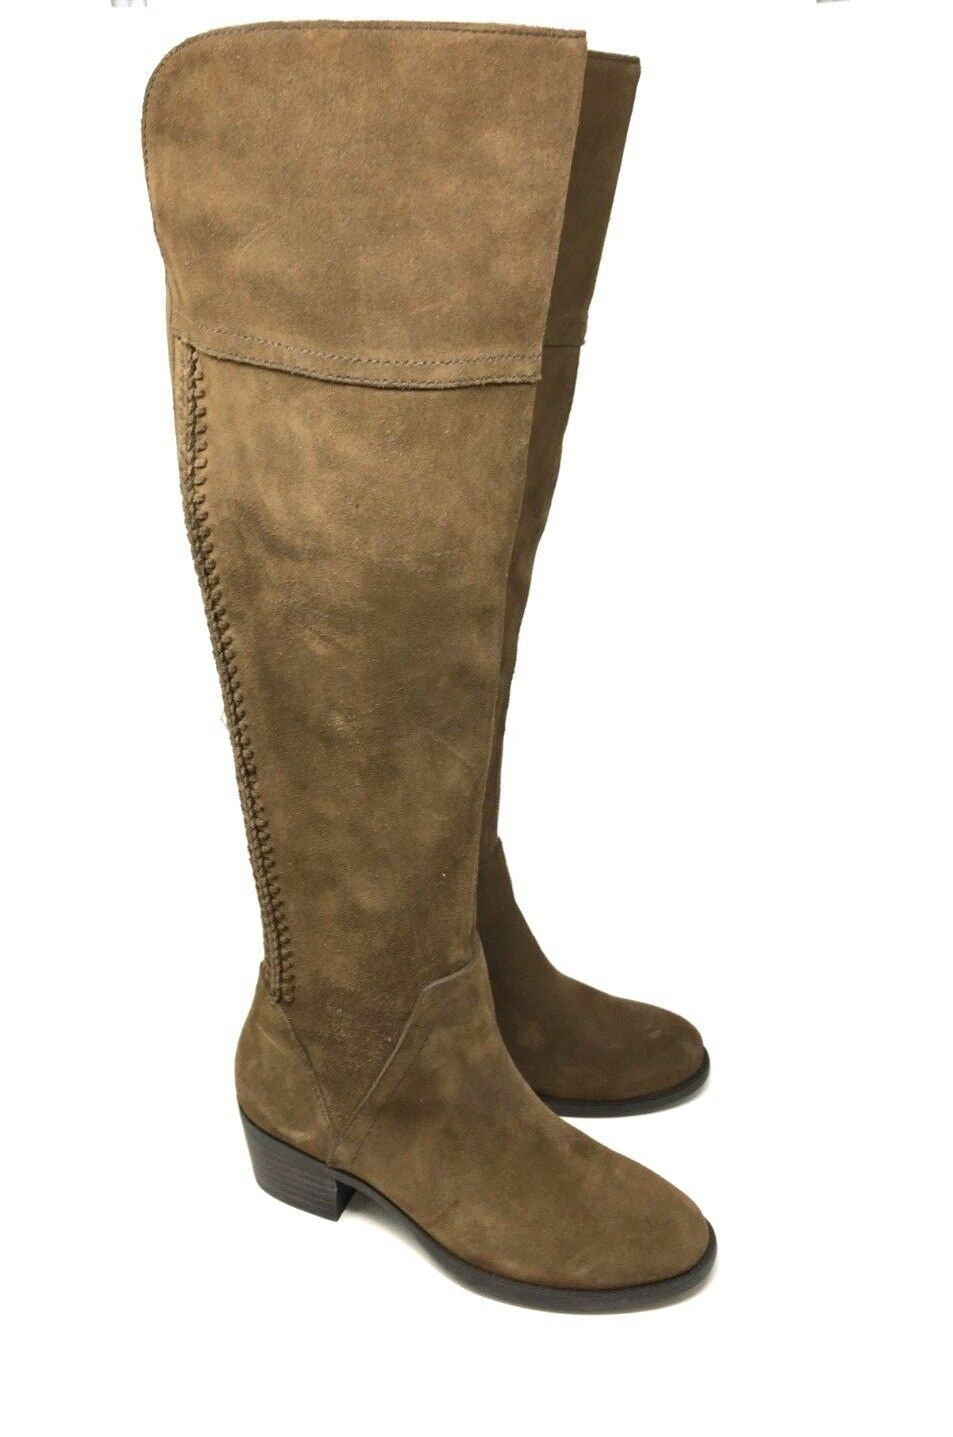 New Vince Camuto Bendra Leather Suede Over the Knee Marronee stivali Dimensione 5.5